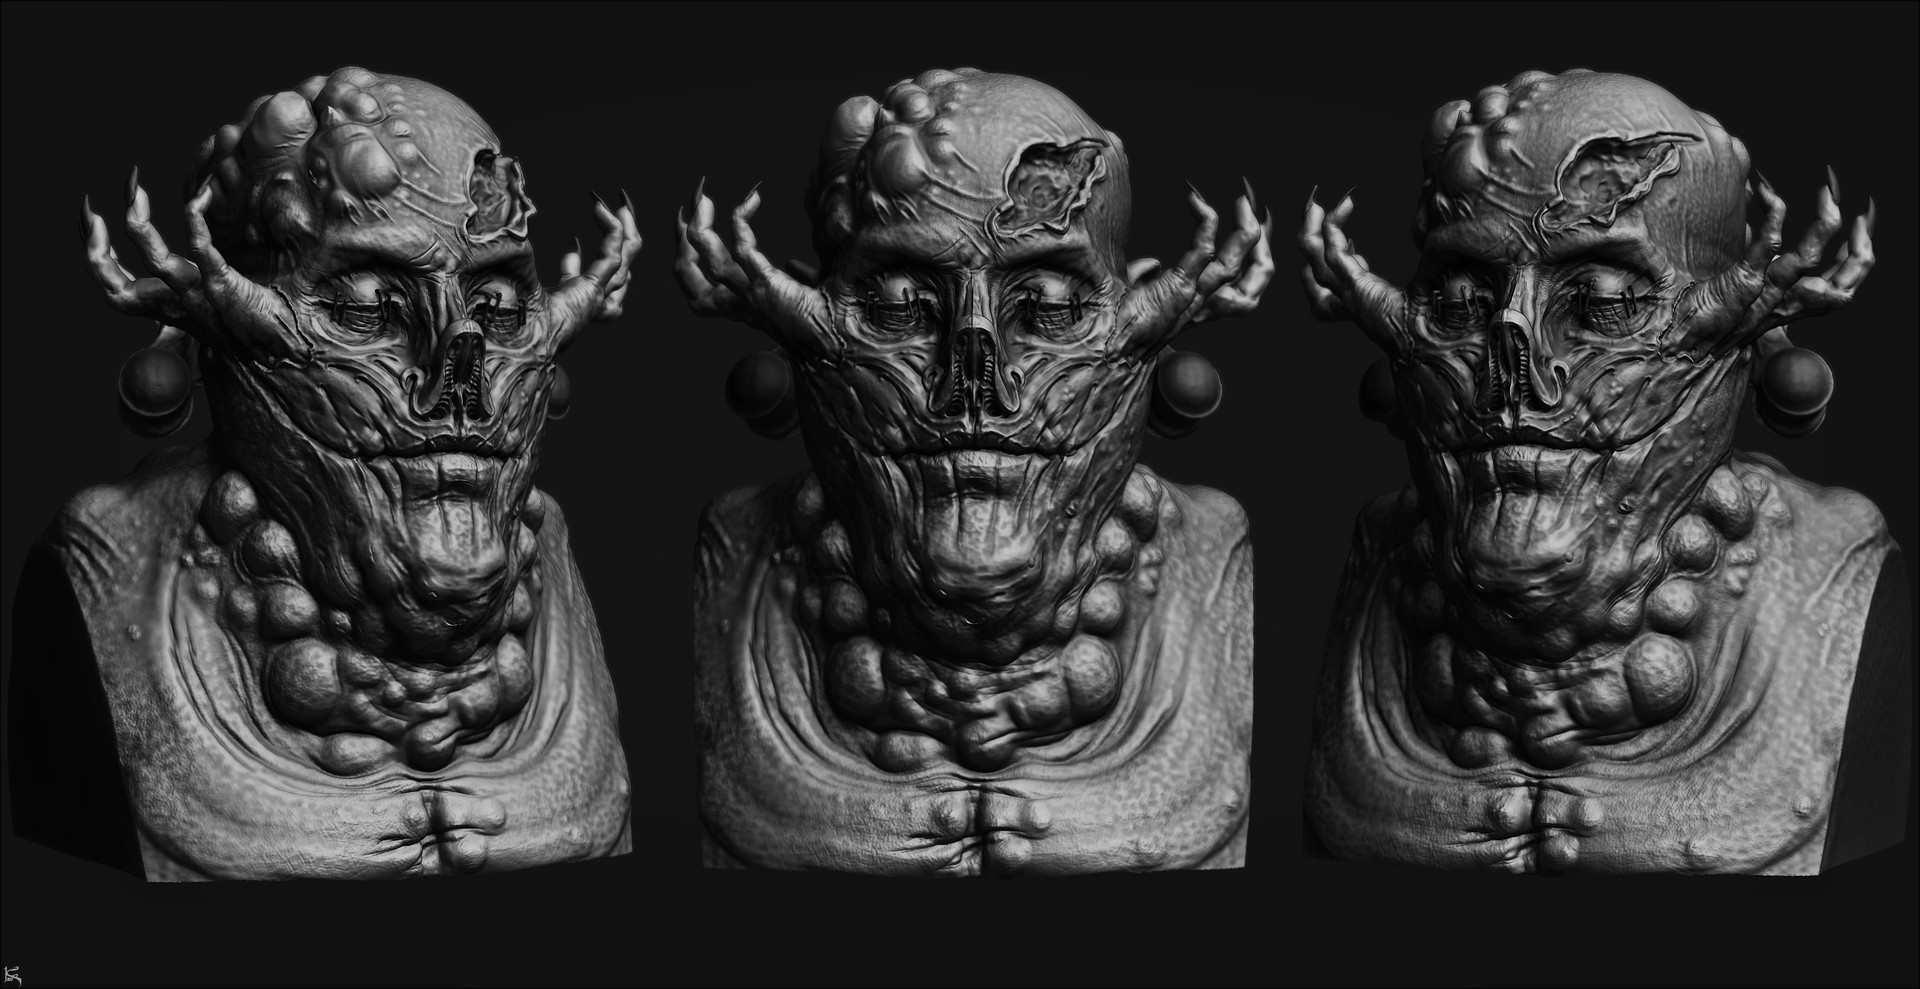 kenny-carmody-zbrush-screengrab-1001.jpg